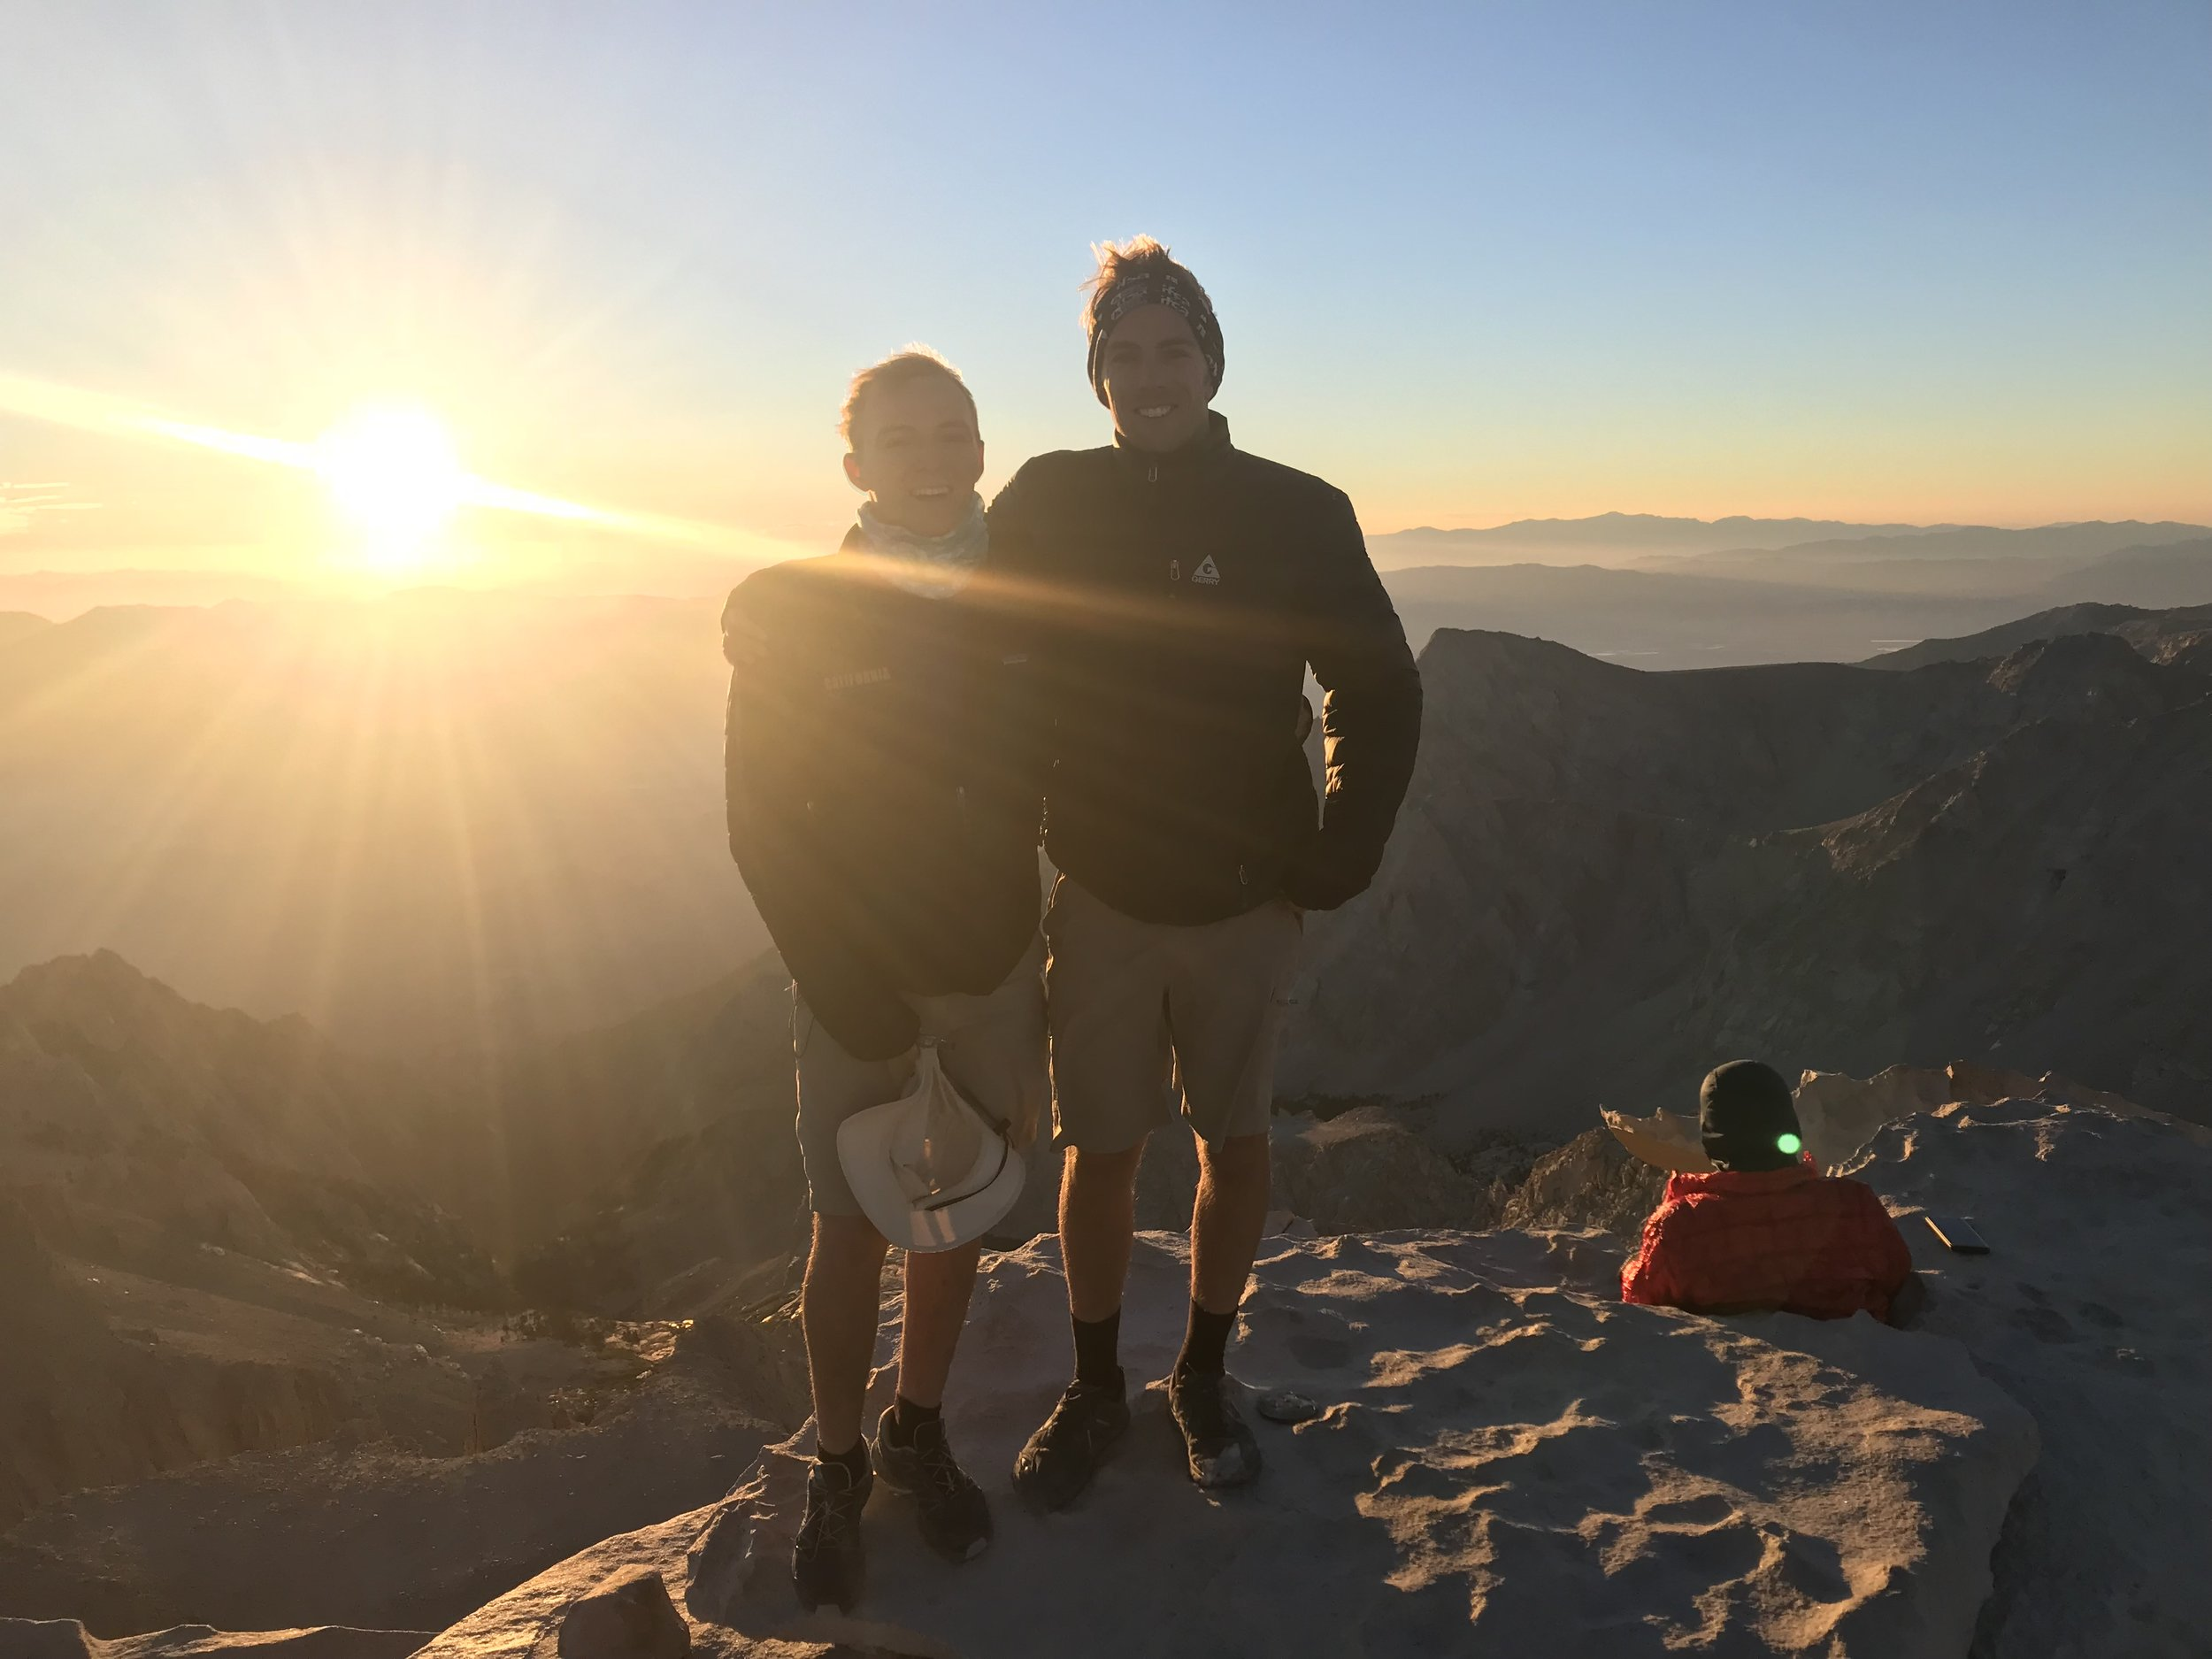 Brothers at sunrise, featuring random stranger in background.